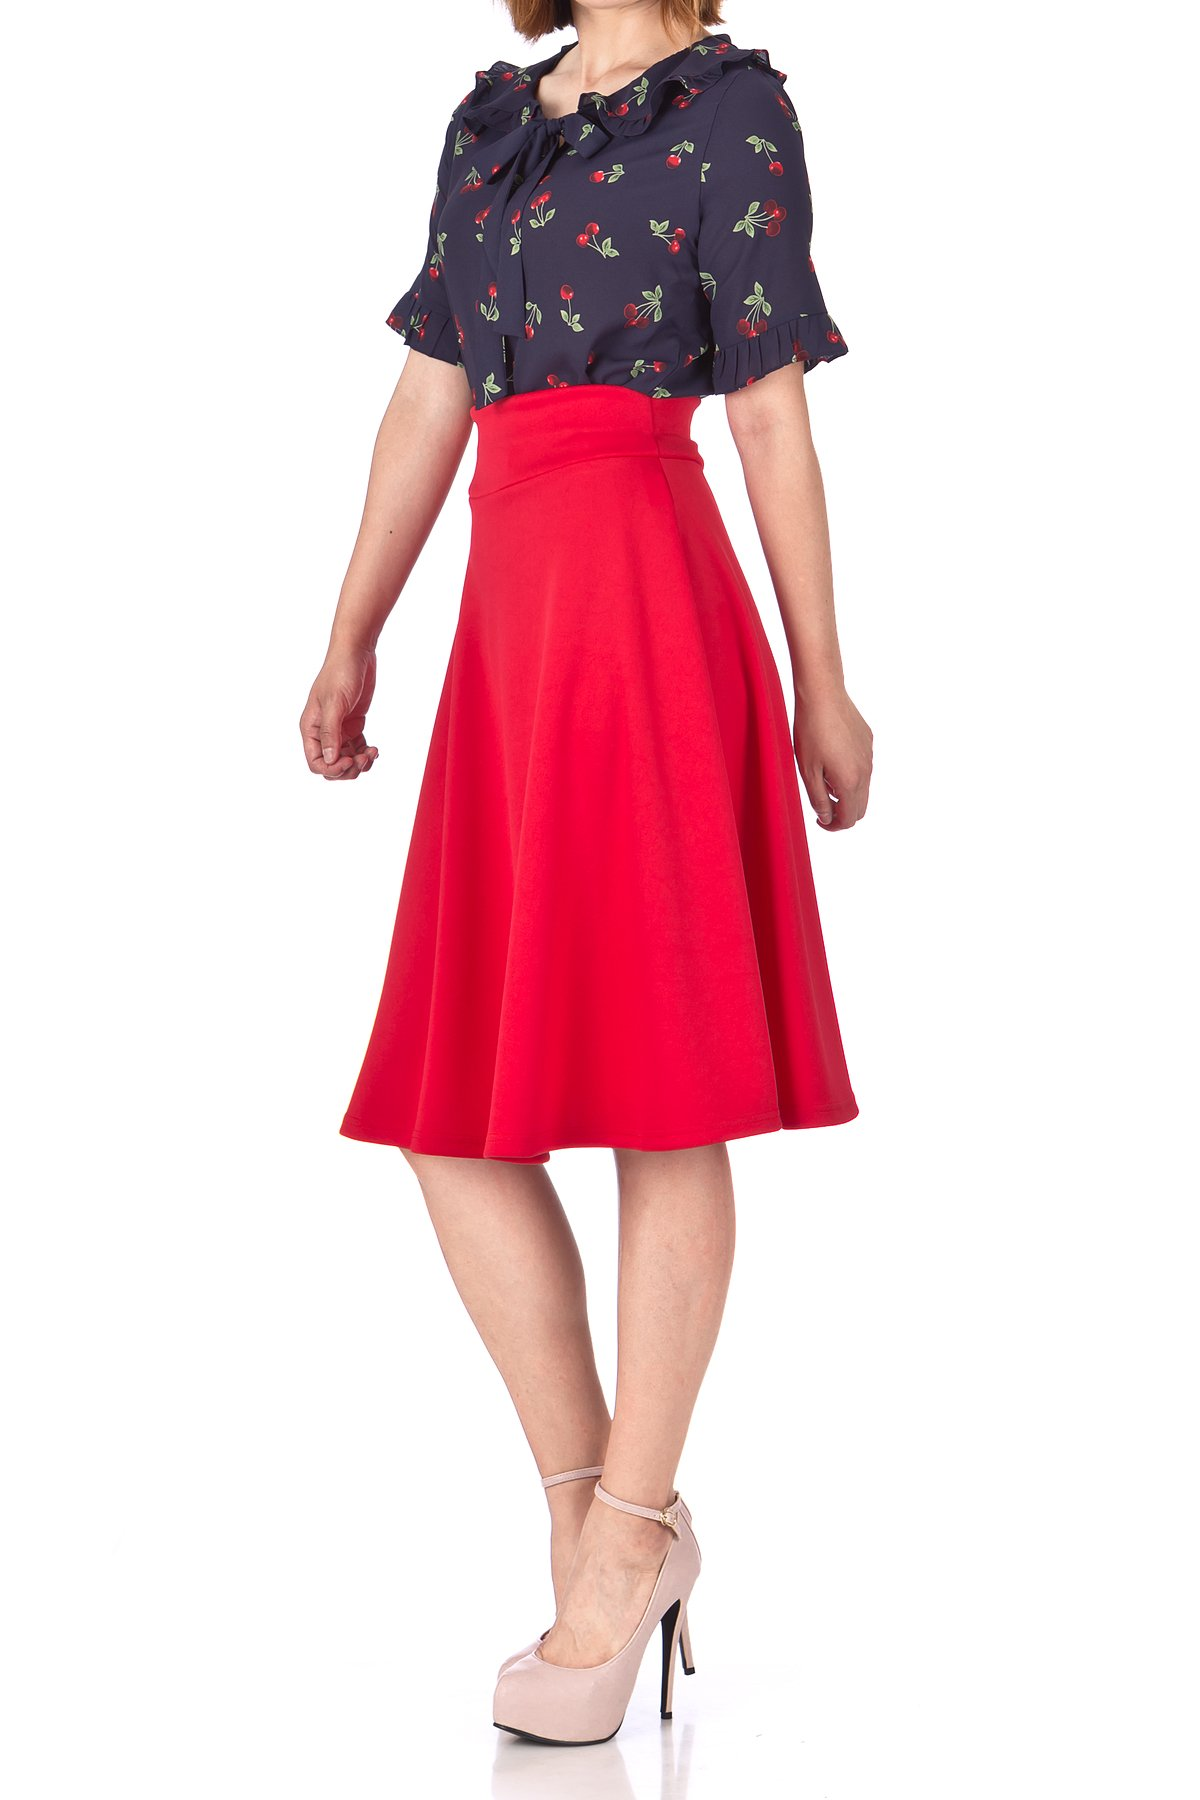 Stunning Wide High Waist A line Full Flared Swing Office Dance Party Casual Circle Skater Midi Skirt Red 03